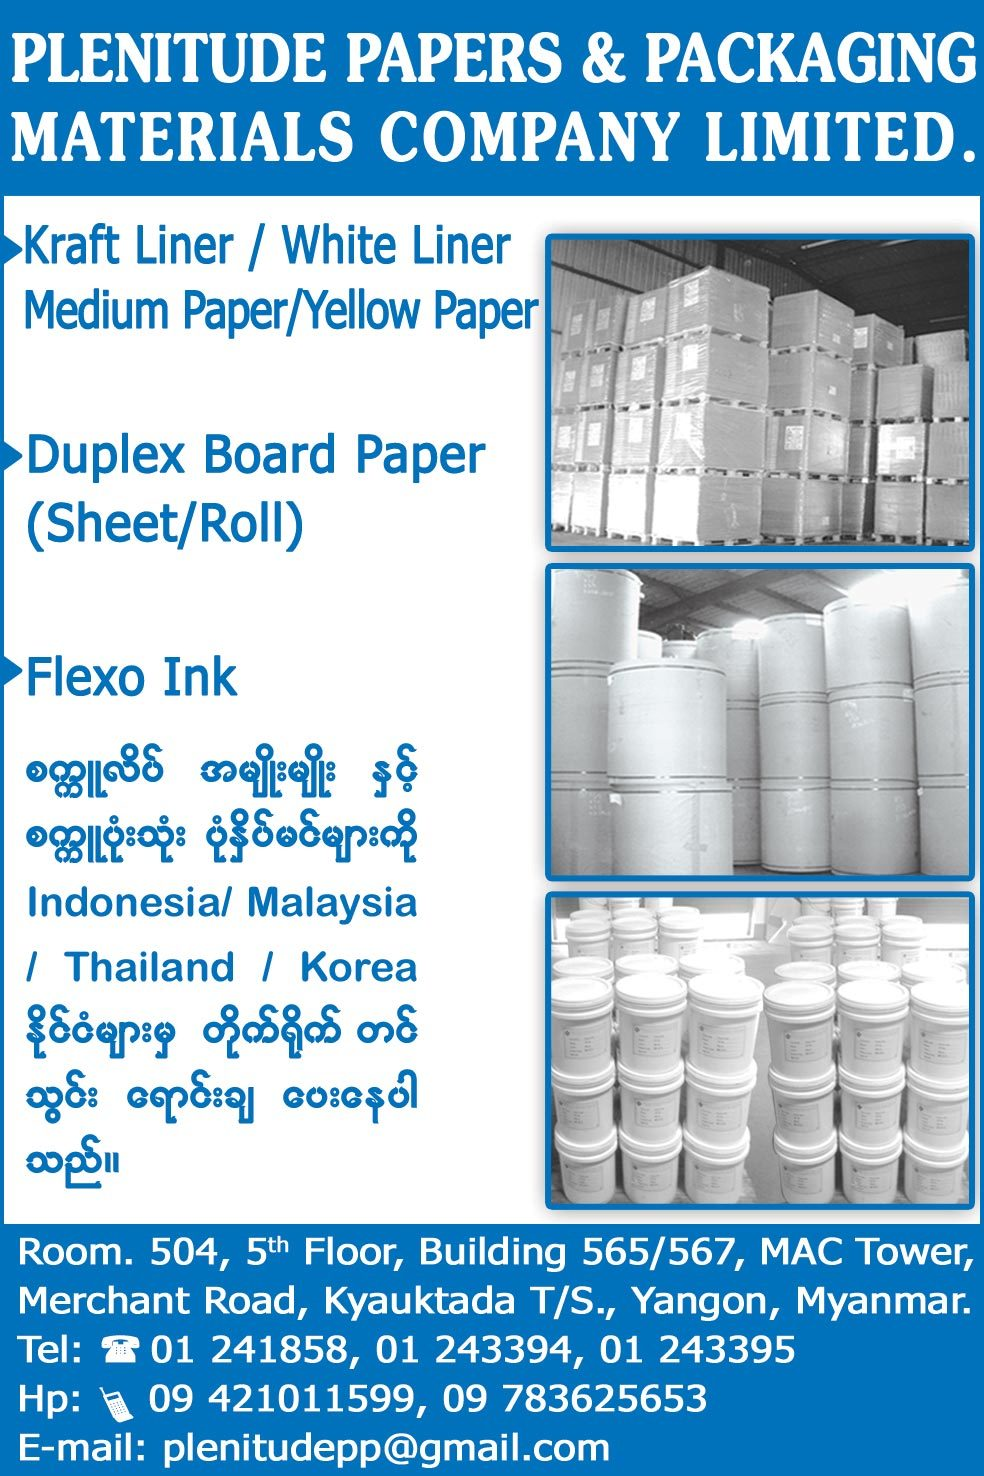 Plenitude-Papers-&-Packaging-Materials-Co-Ltd_Paper-&-Allied-Products_(D)_251.jpg